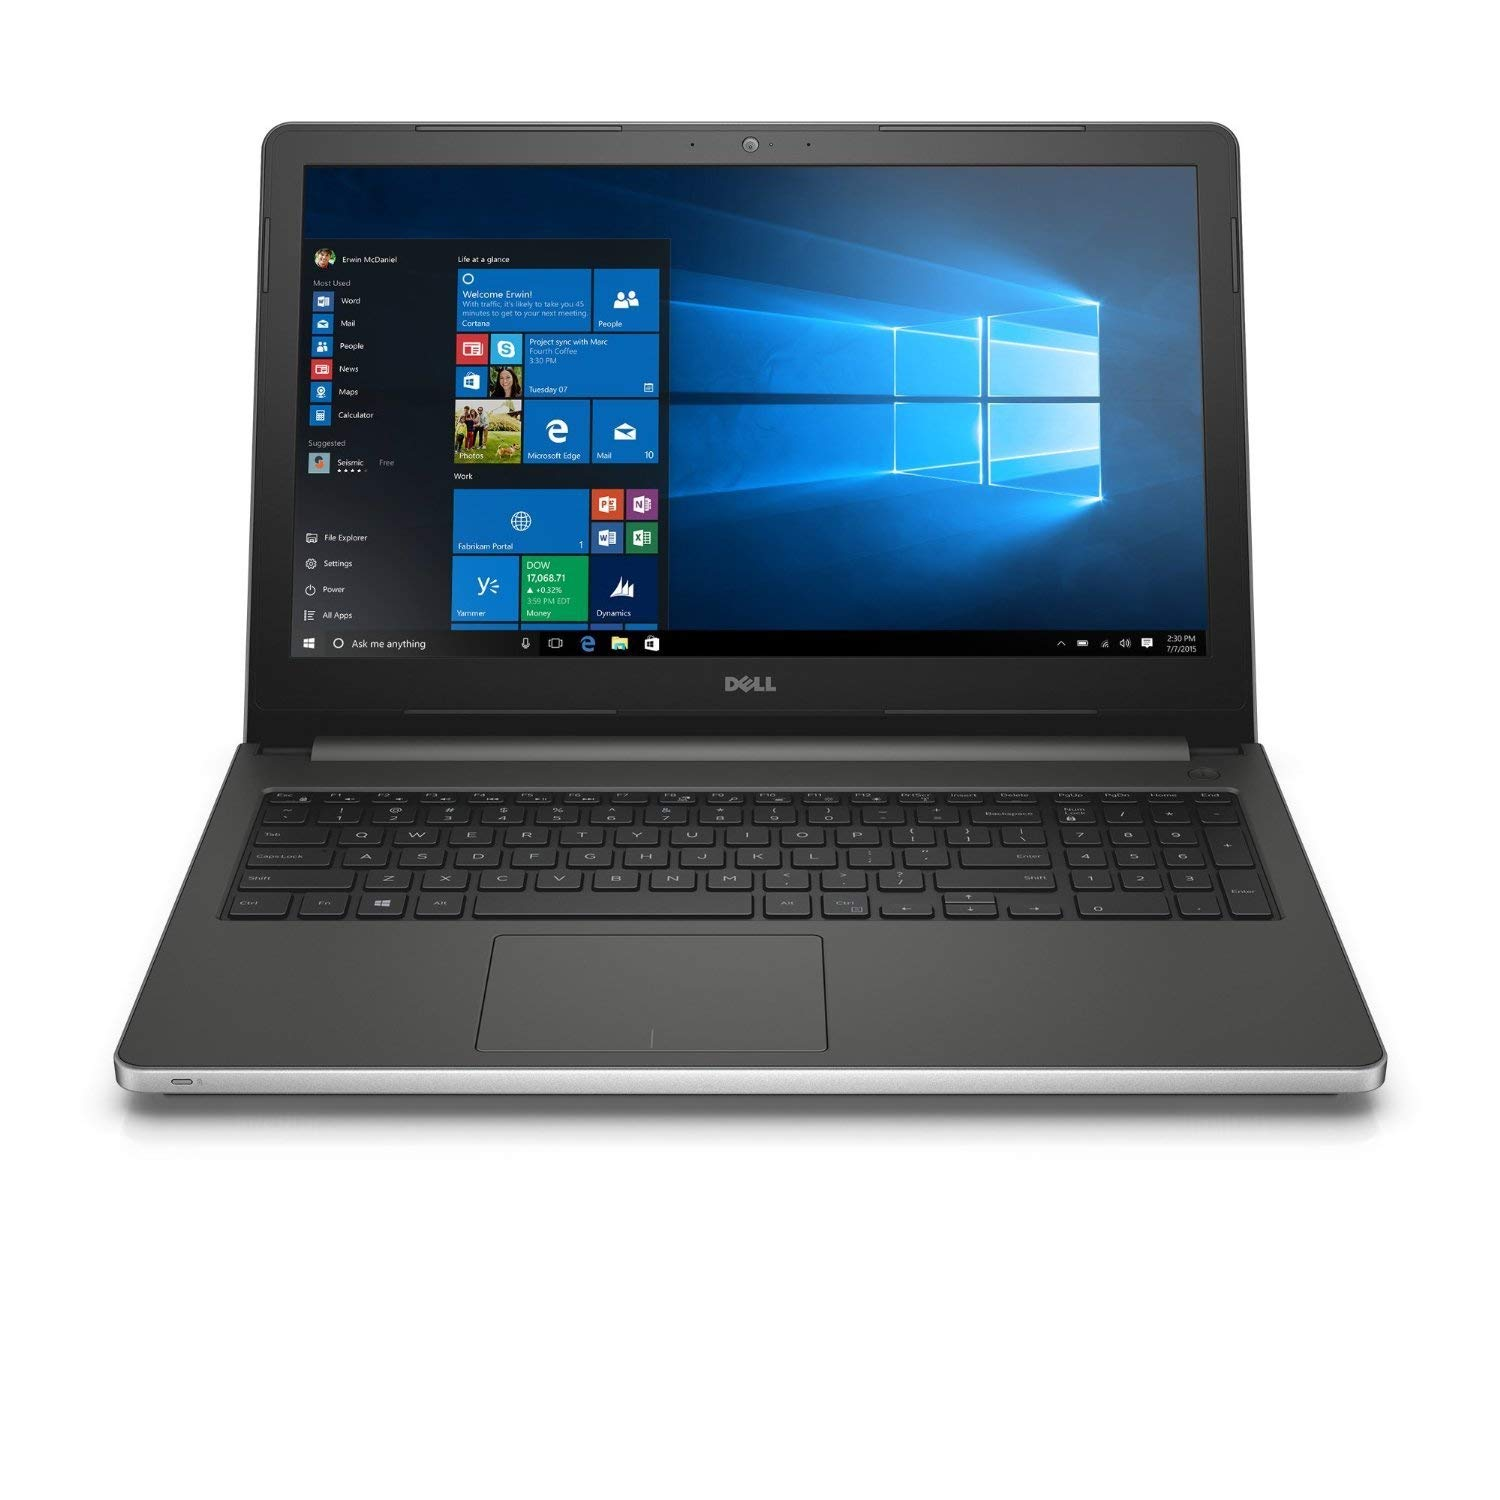 Dell Inspiron 15 5559 15.6-inch Laptop Image